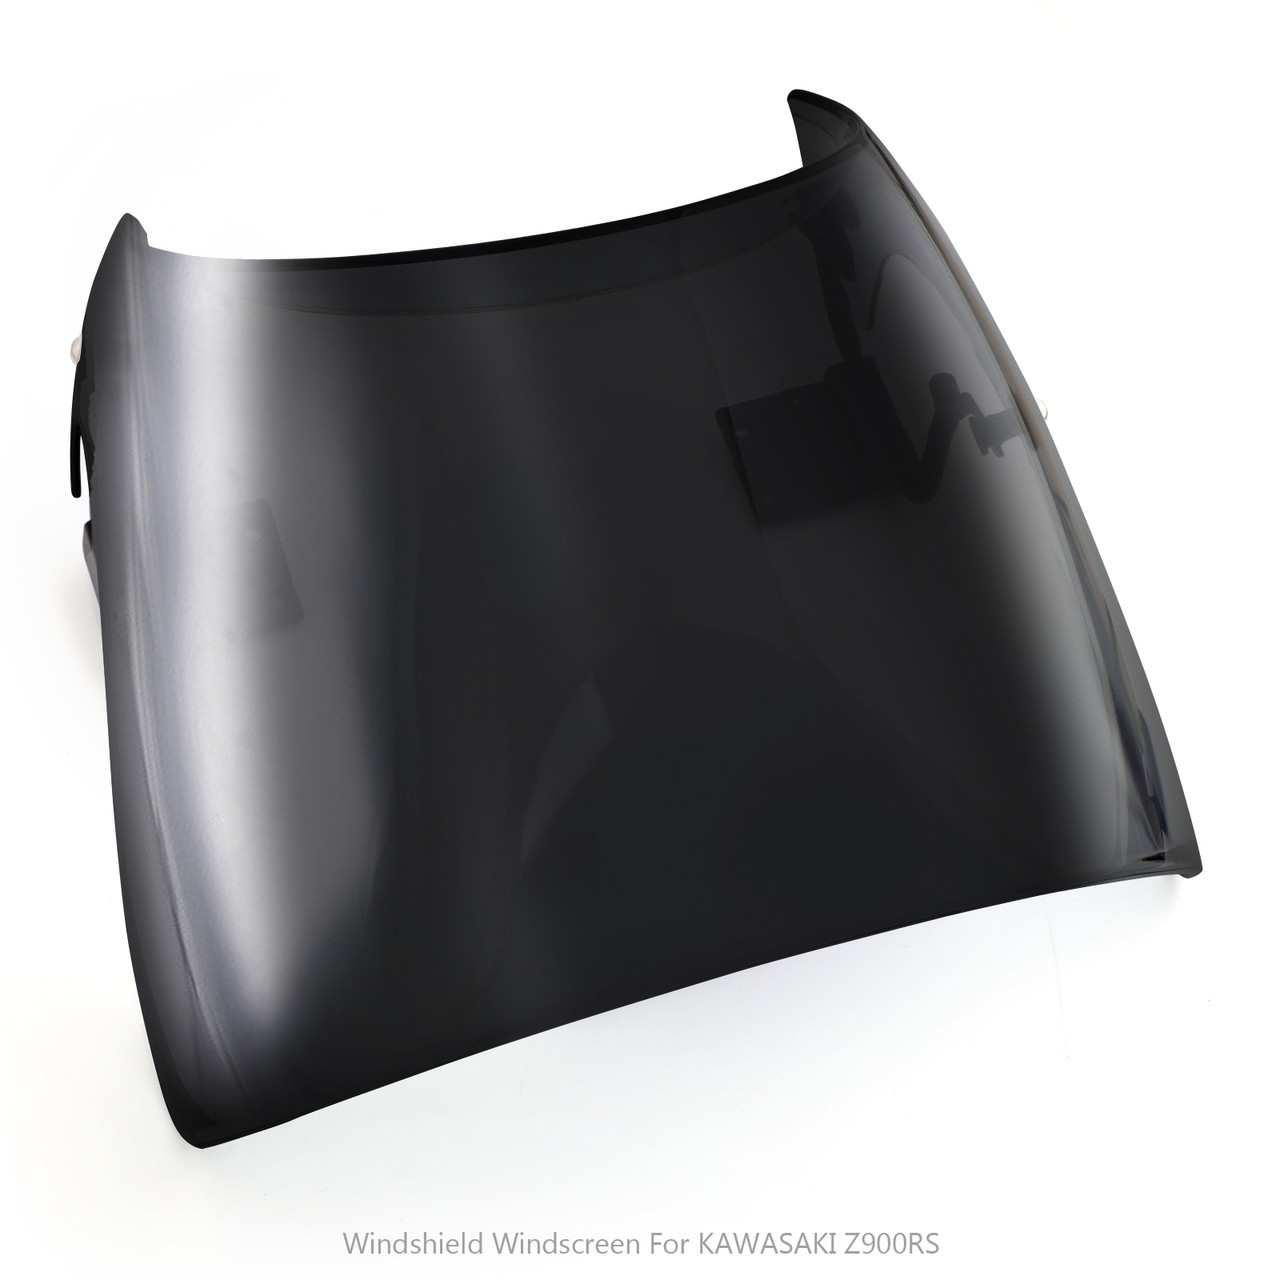 ABS Windscreen Windshield Cafe Racer Wind Protector for Kawasaki Z900RS 2018 Black